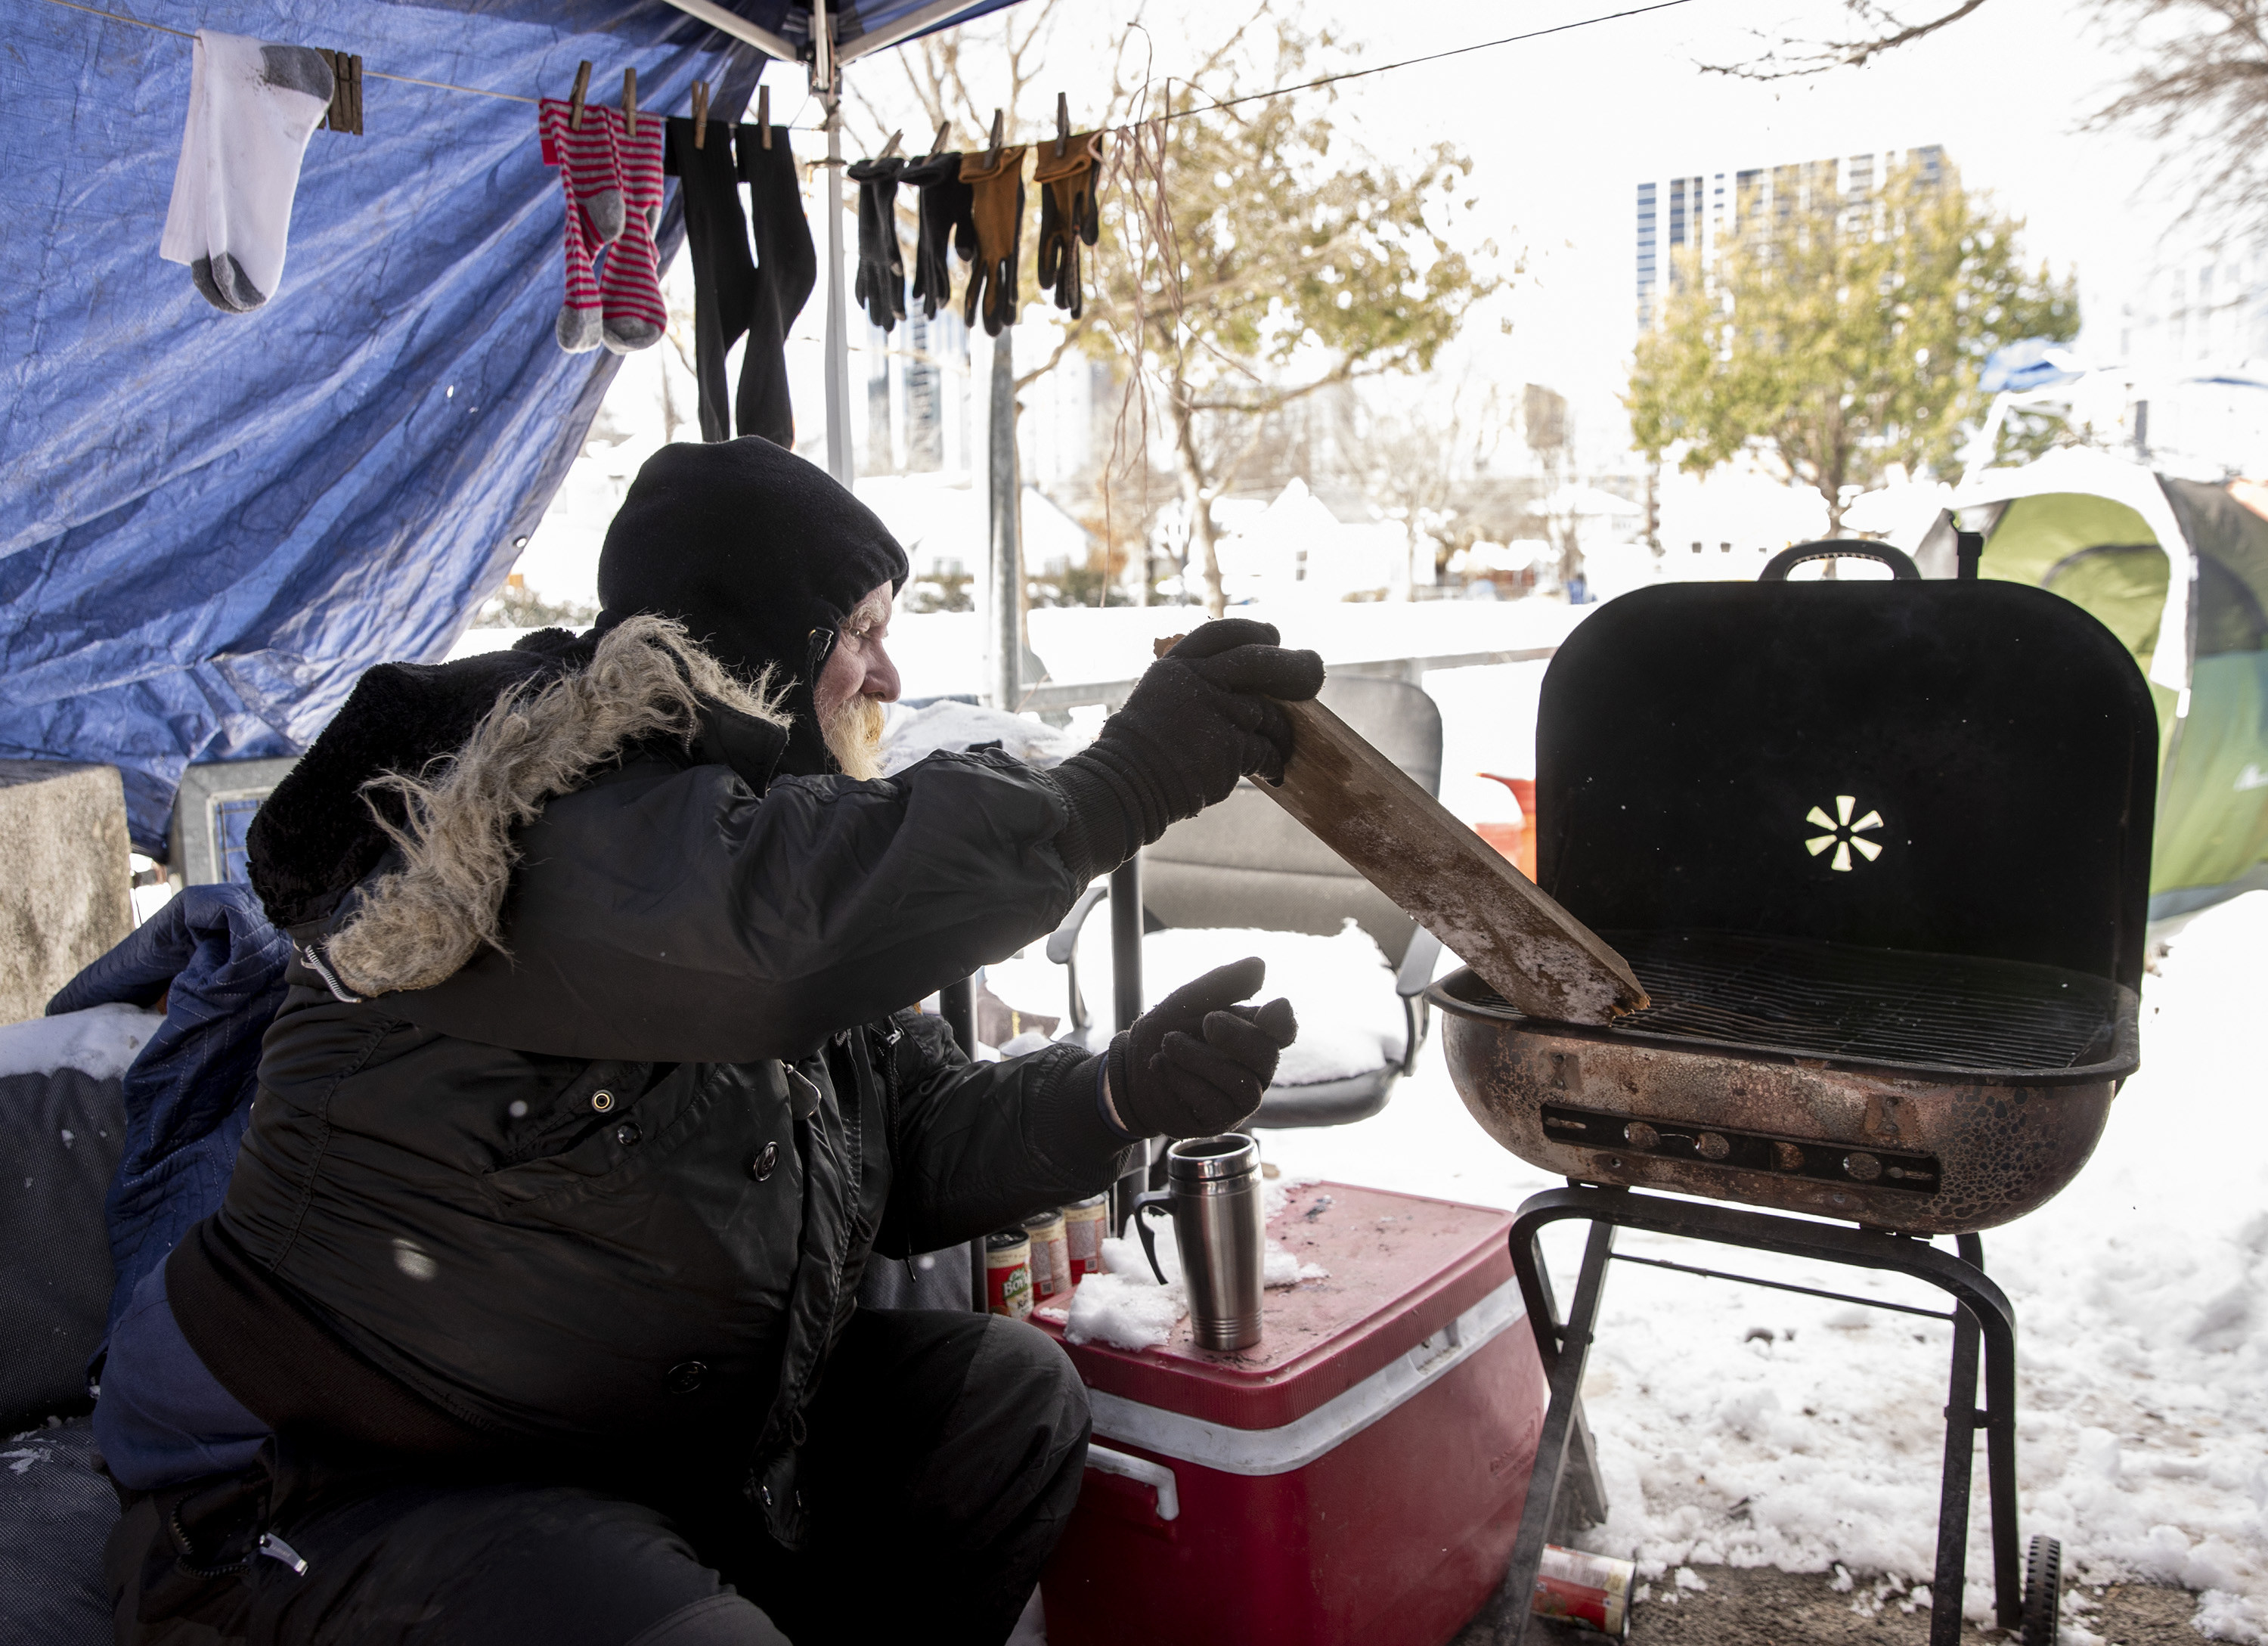 An unhoused man warming himself outside with a grill after the snow in Texas